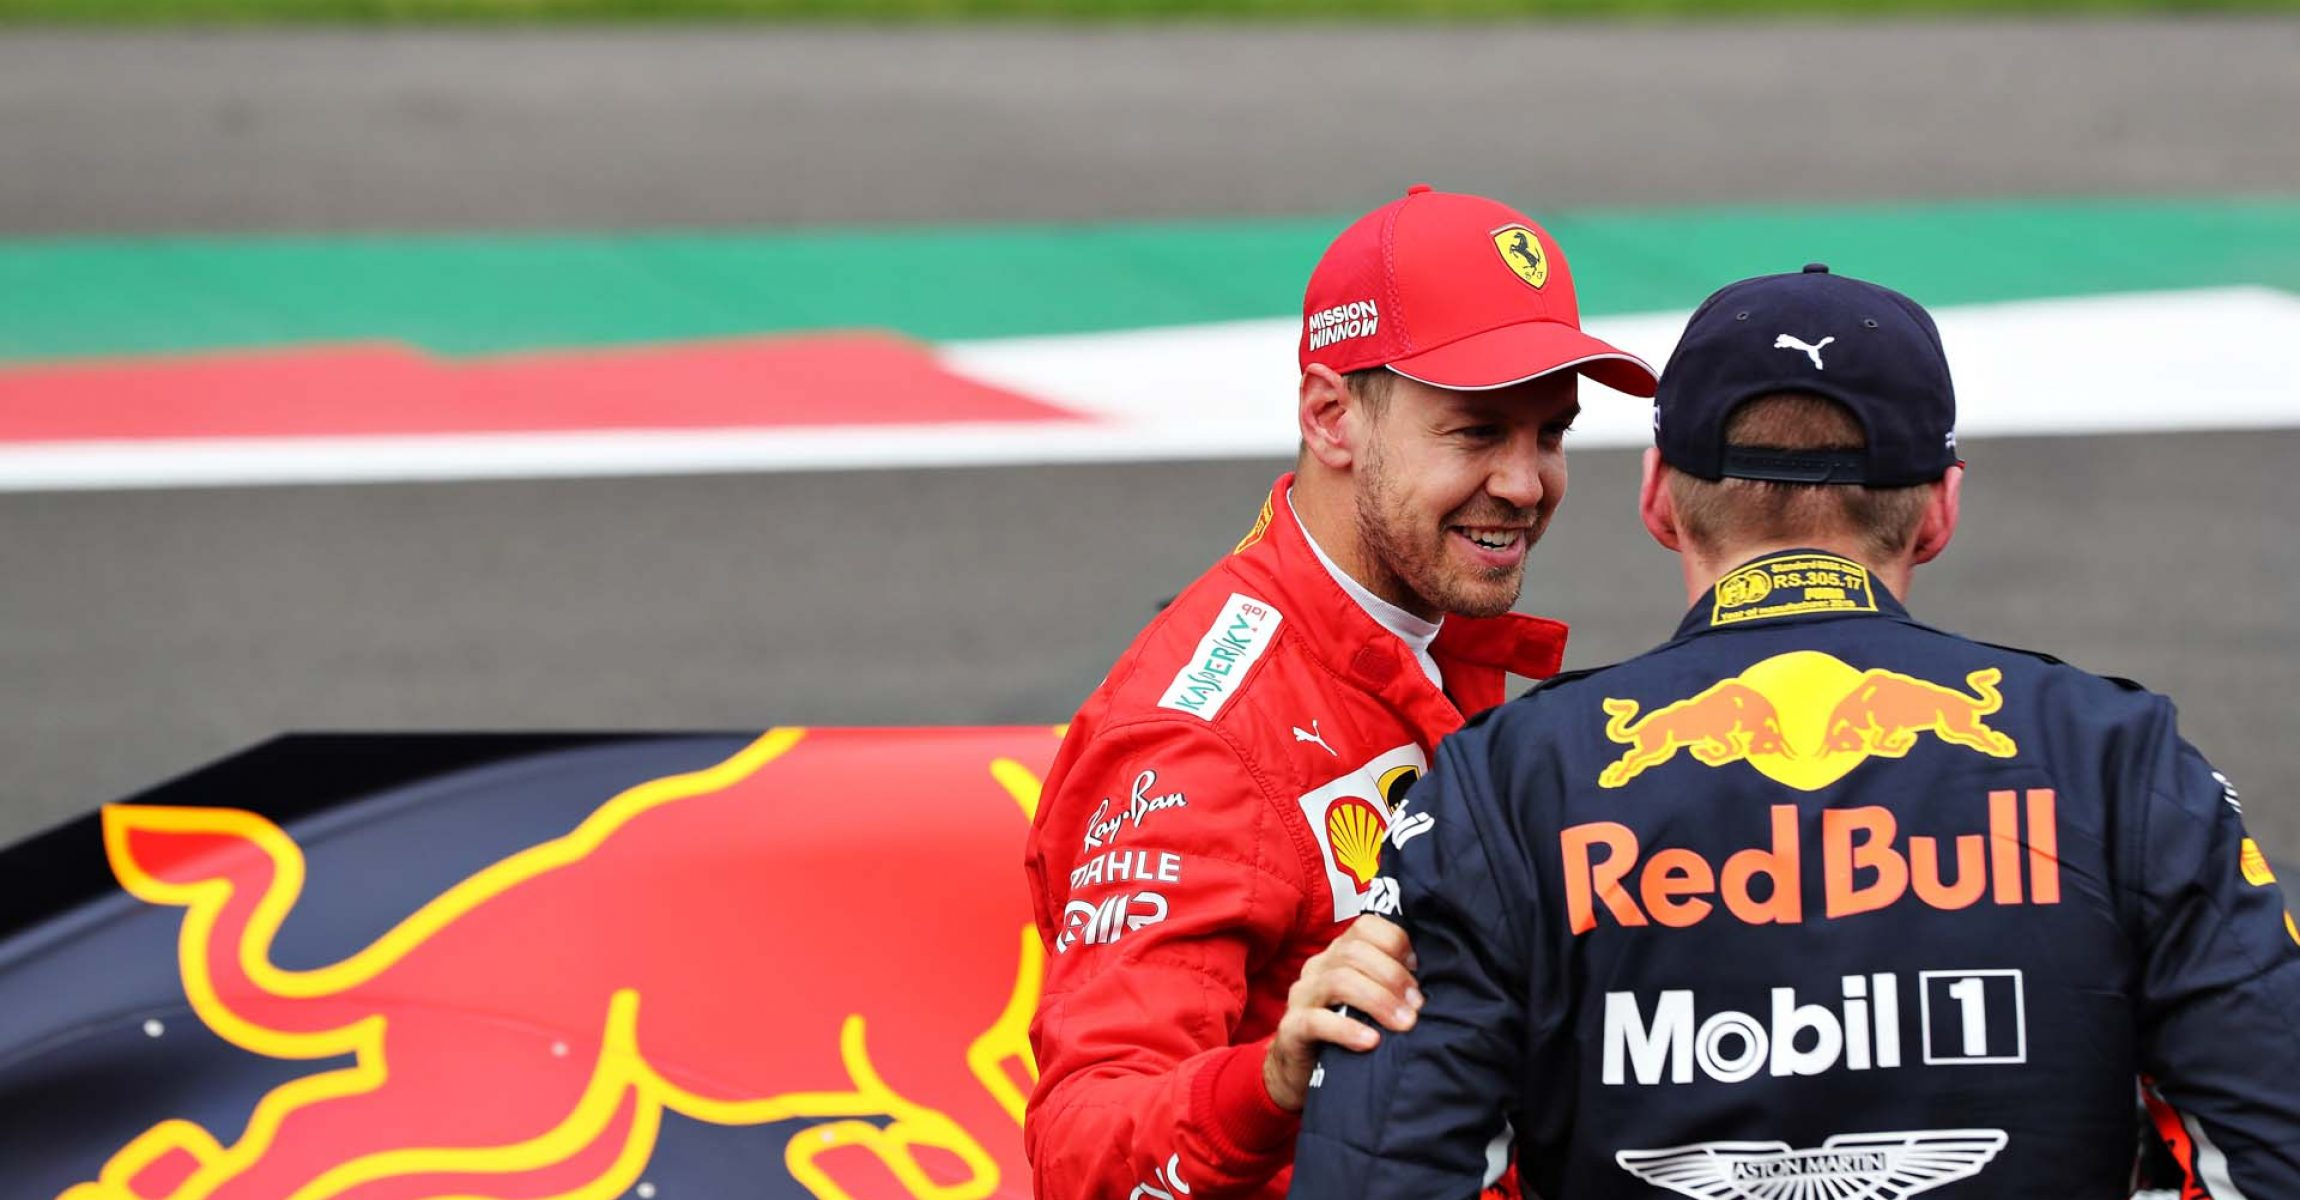 MEXICO CITY, MEXICO - OCTOBER 26: Pole position qualifier Max Verstappen of Netherlands and Red Bull Racing talks with third place qualifier Sebastian Vettel of Germany and Ferrari in parc ferme during qualifying for the F1 Grand Prix of Mexico at Autodromo Hermanos Rodriguez on October 26, 2019 in Mexico City, Mexico. (Photo by Mark Thompson/Getty Images) // Getty Images / Red Bull Content Pool // AP-21ZBEJ7DW2111 // Usage for editorial use only //